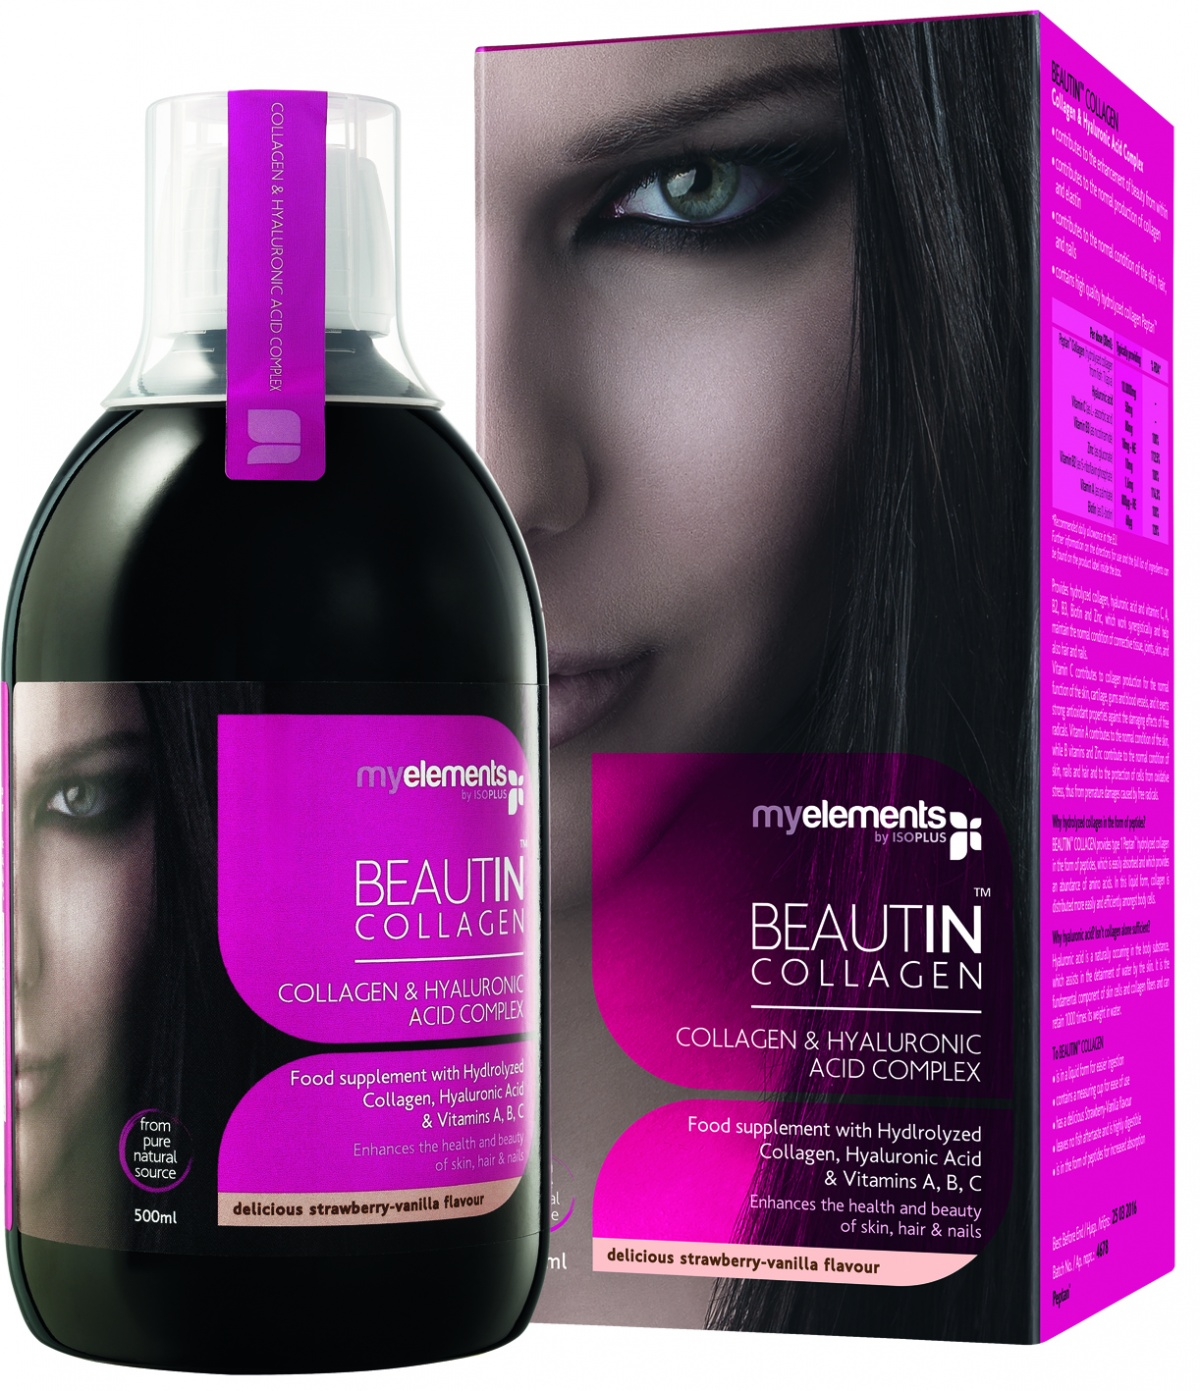 myelements_BEAUTIN COLLAGEN BOX_BOTTLE_